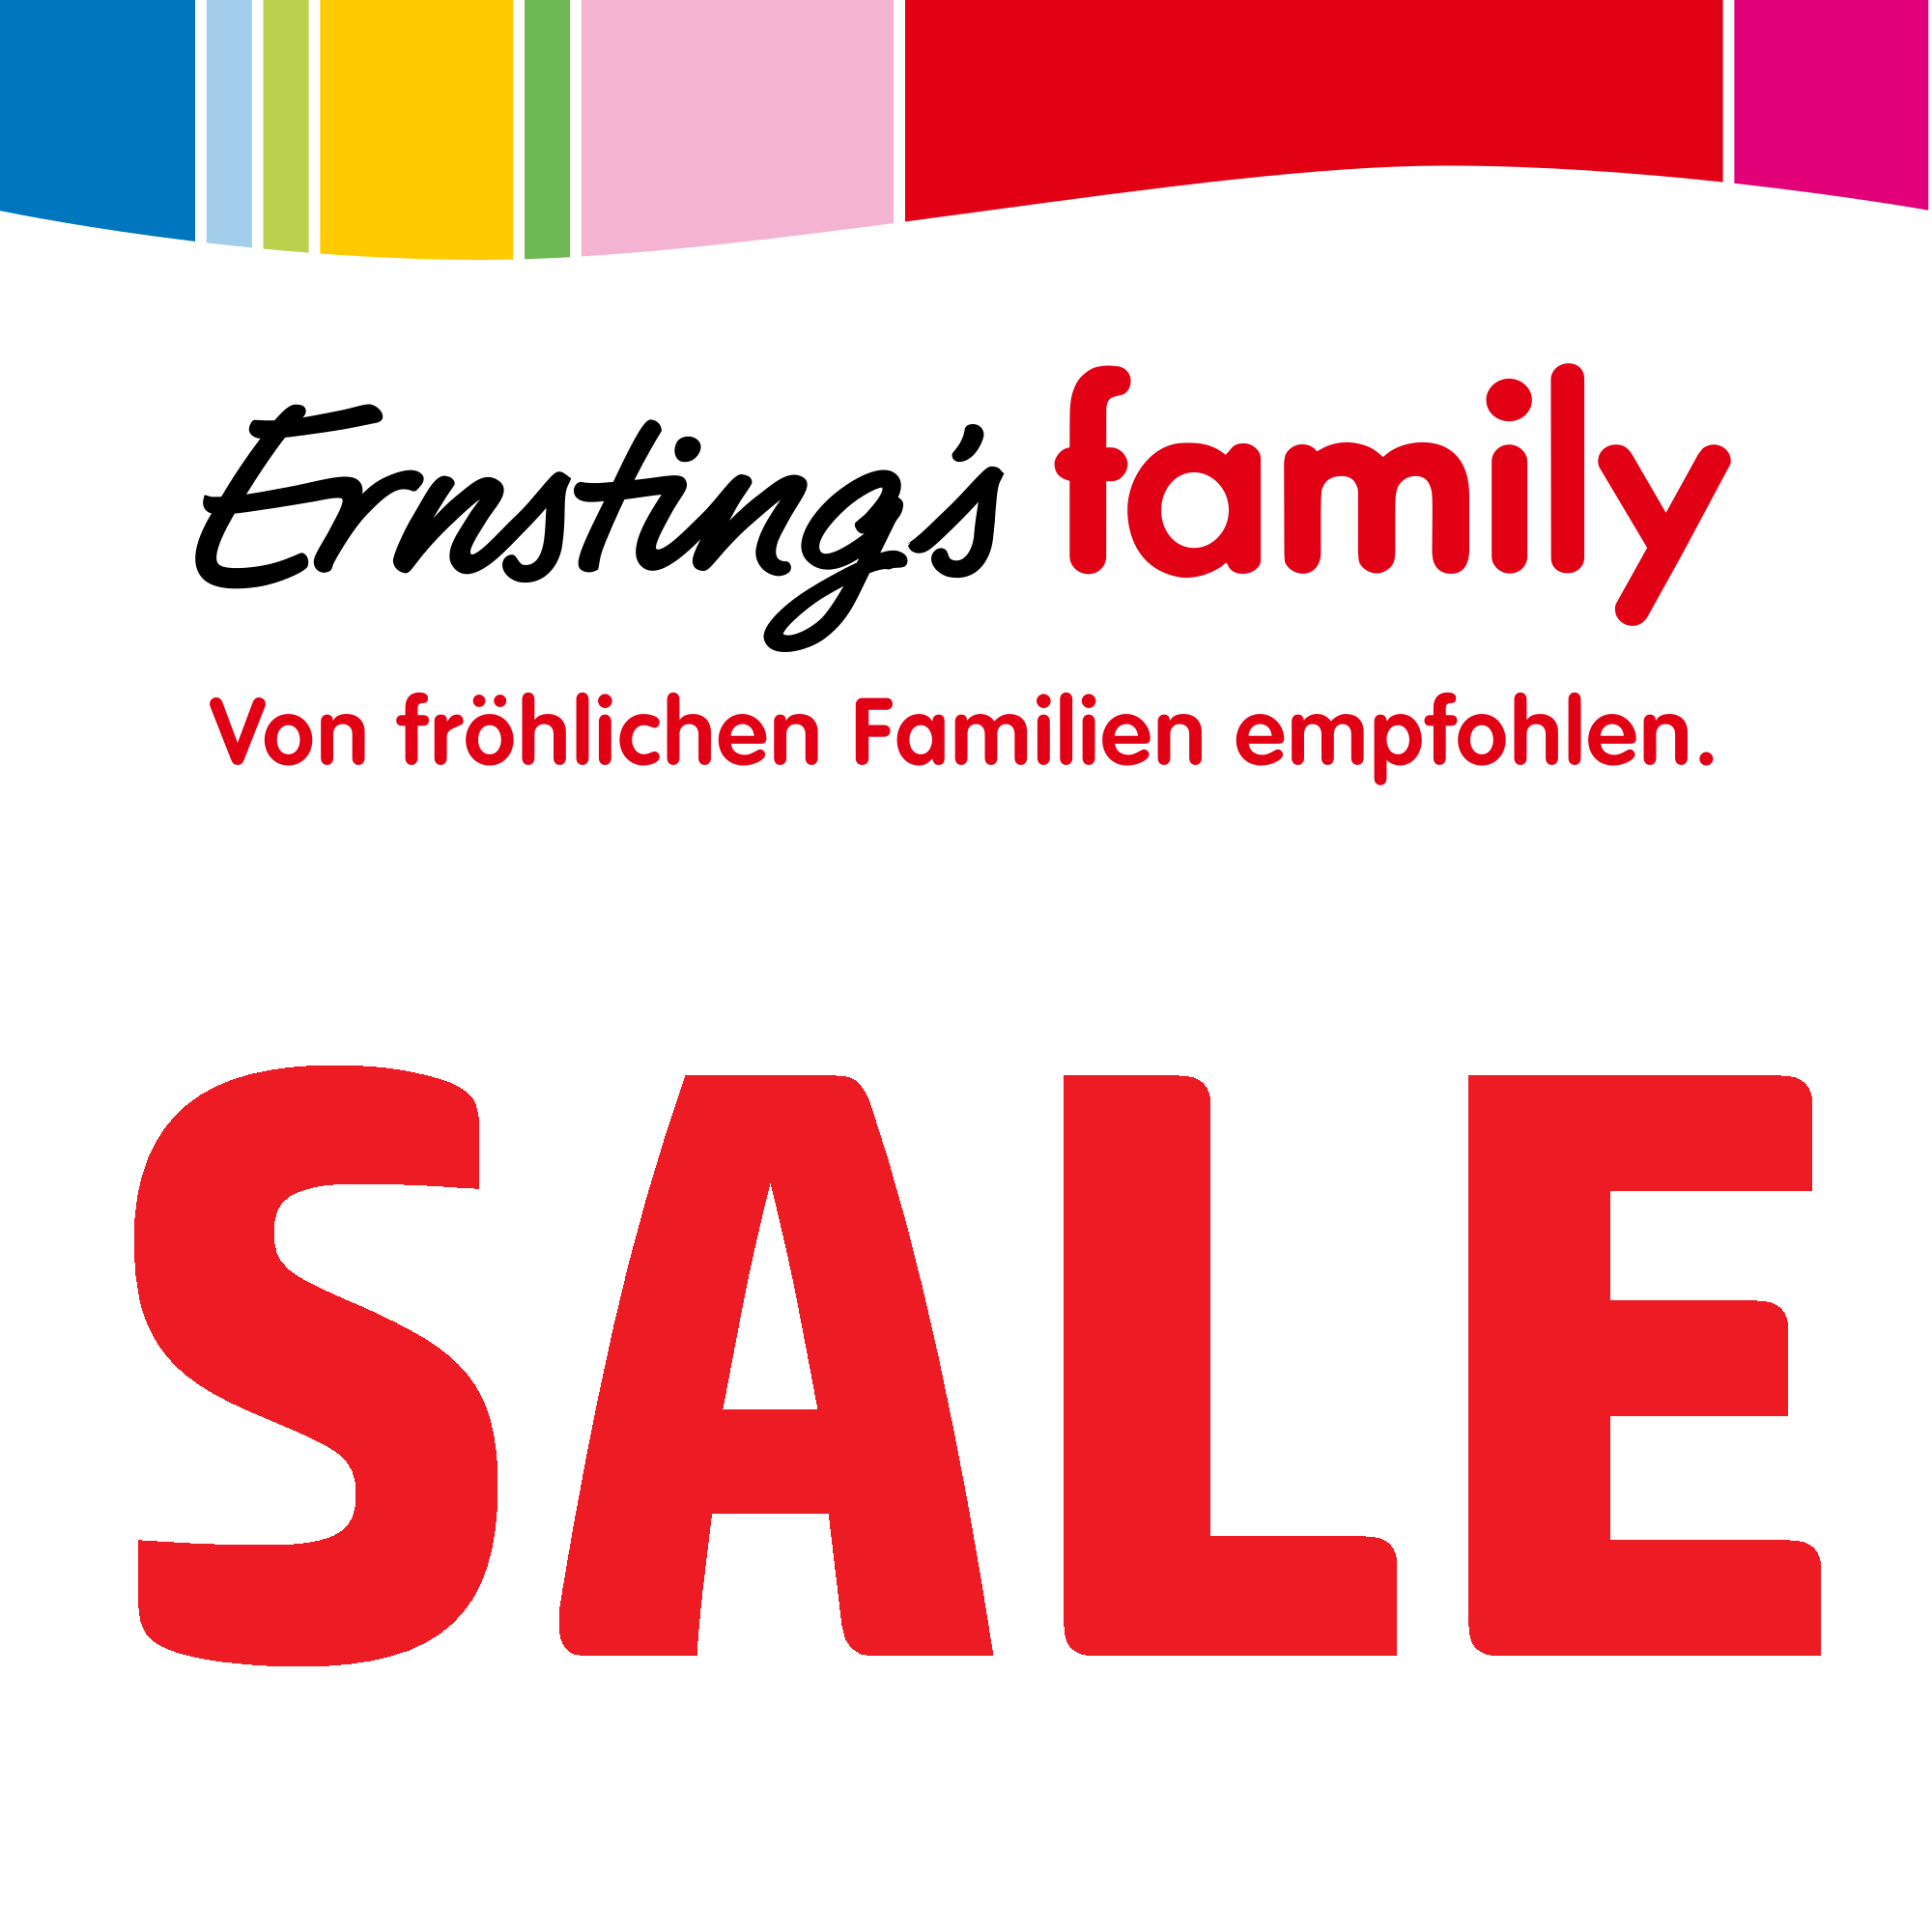 sale 50 extra rabatt bei ernstings family. Black Bedroom Furniture Sets. Home Design Ideas